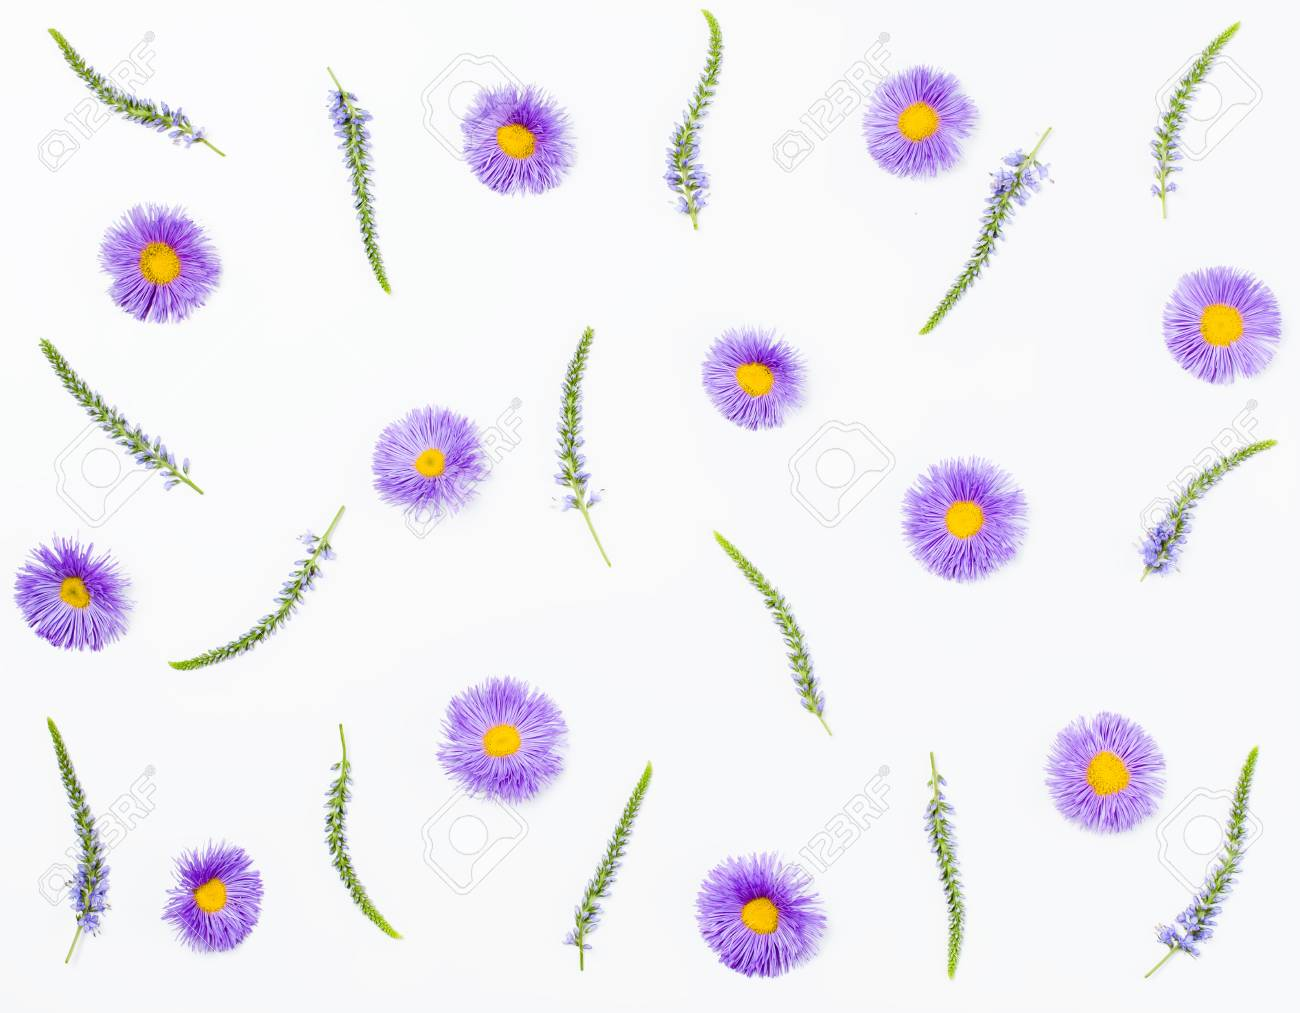 Floral Pattern Made Of Veronica Flowers And Violet Aster On White